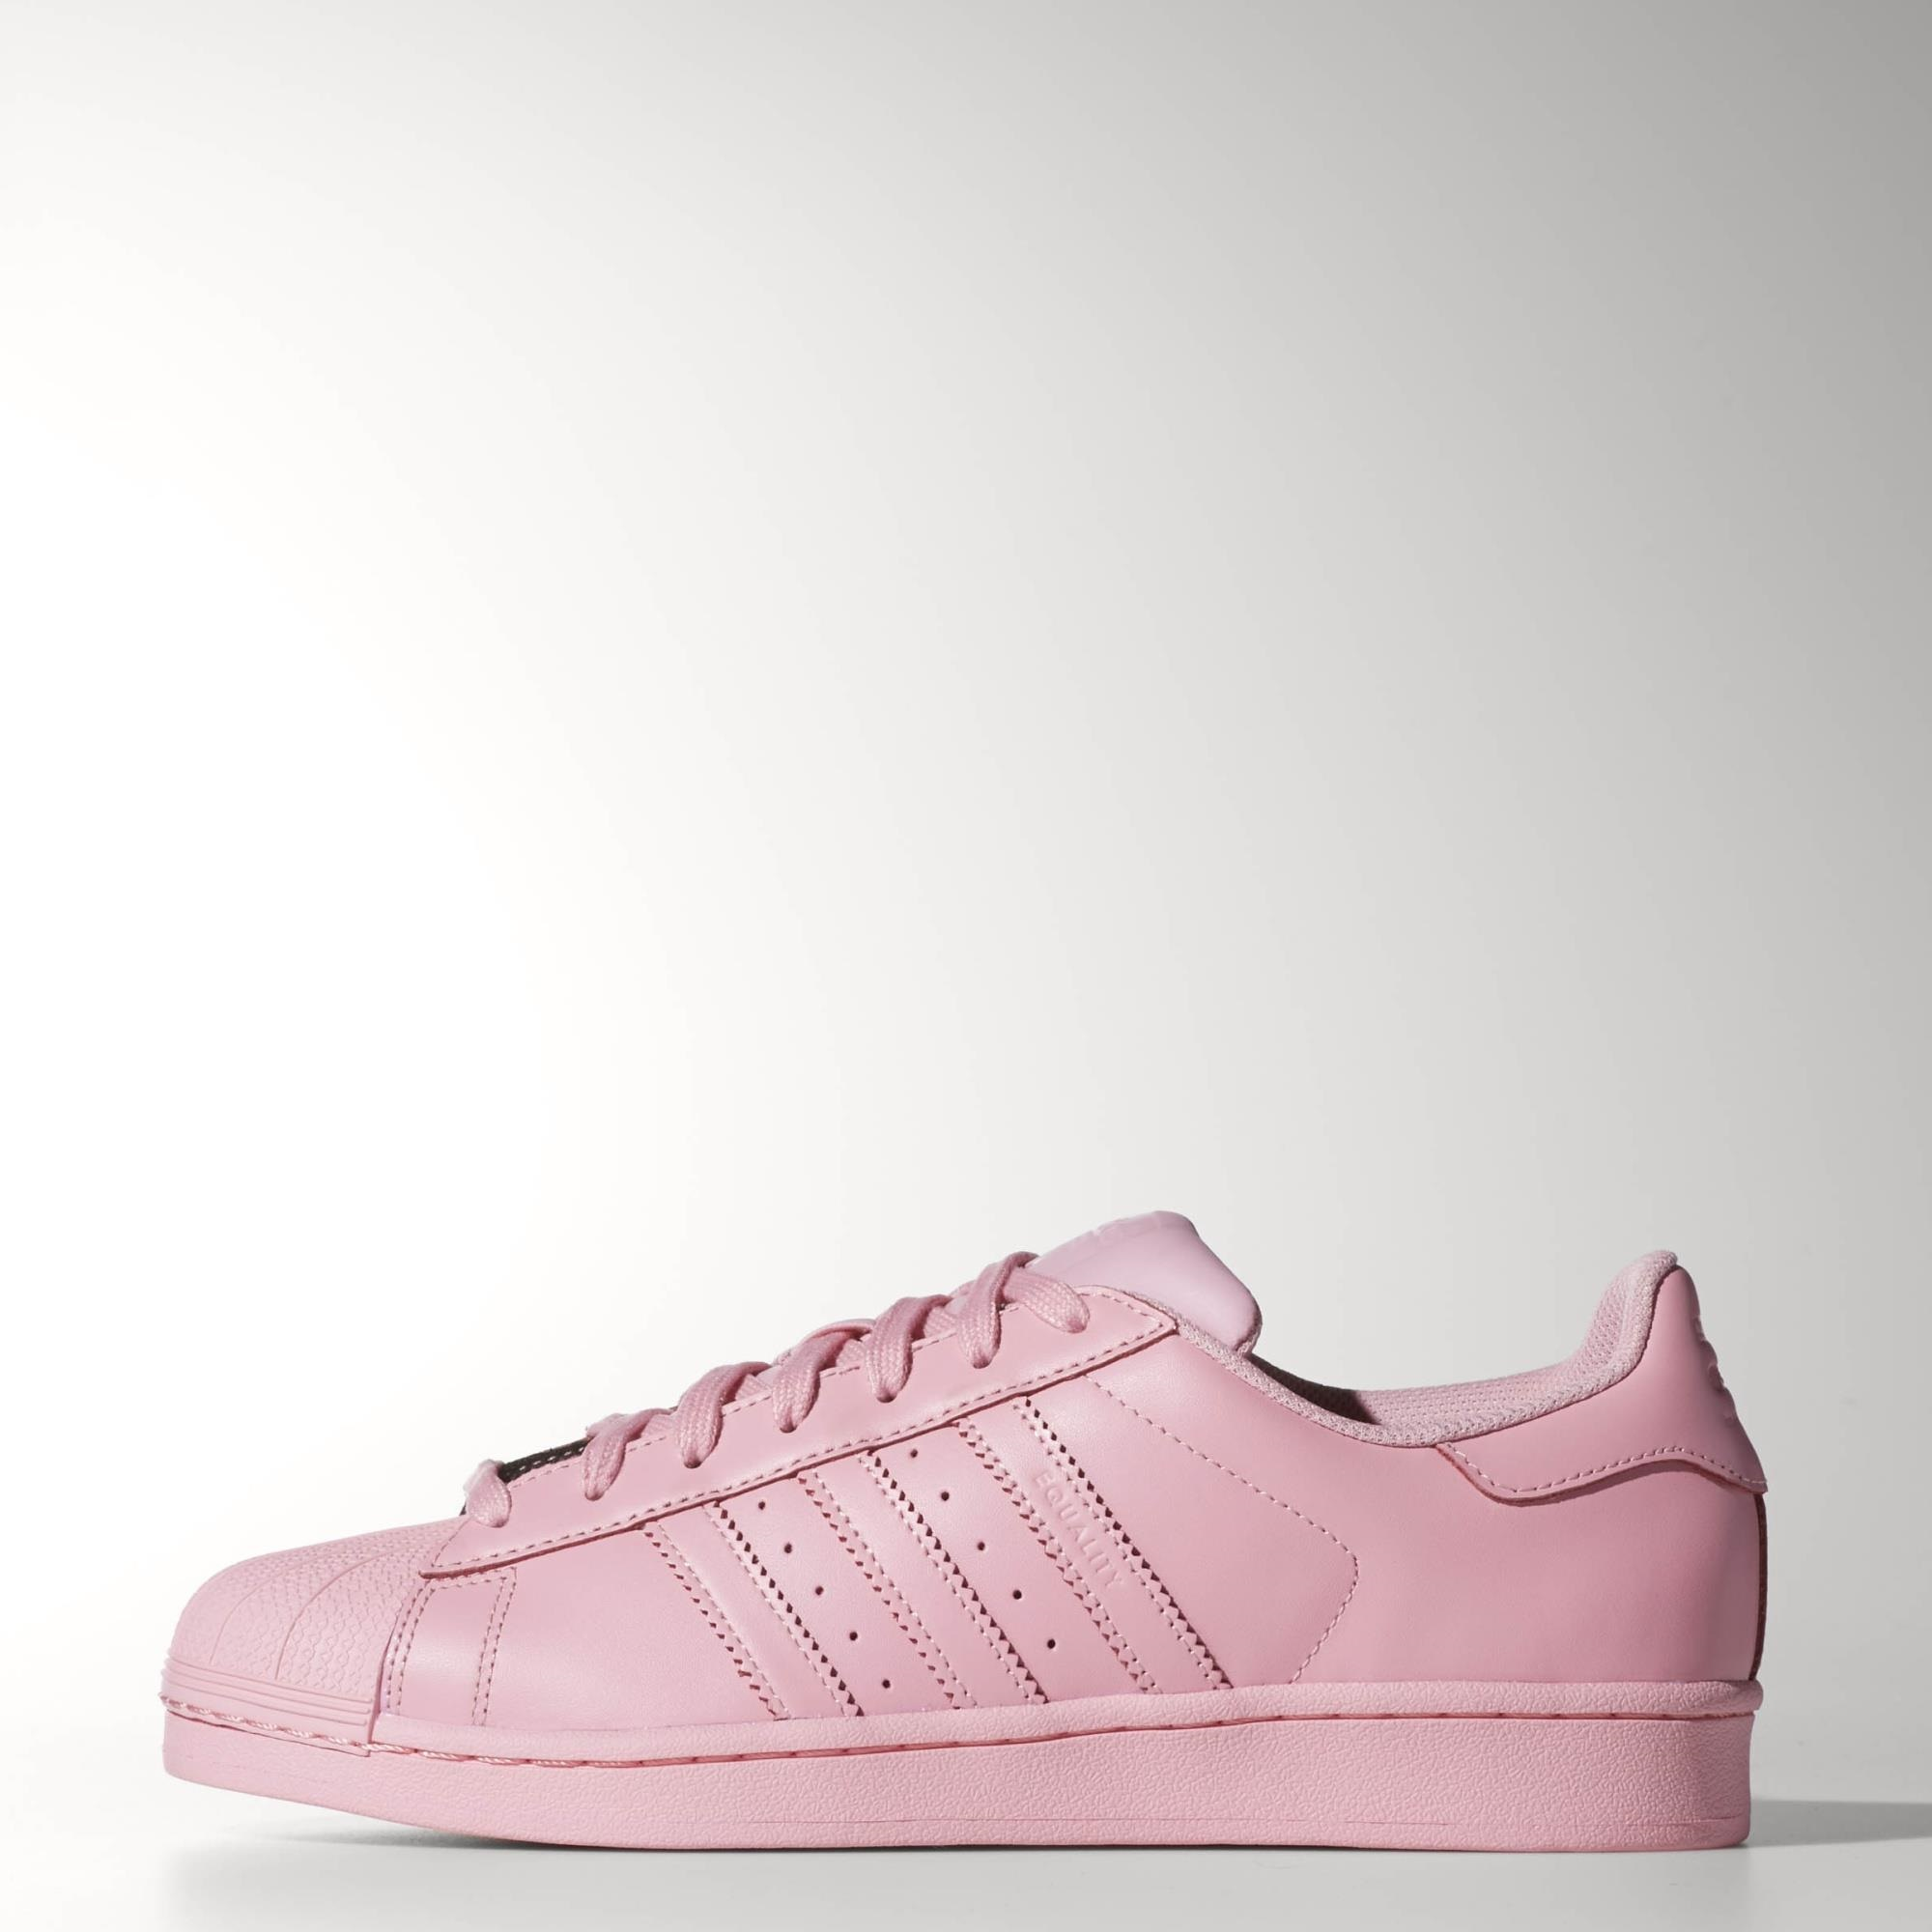 68788570bd6636 ... spain adidas superstar supercolor shoes pink adidas us 8e886 7c749